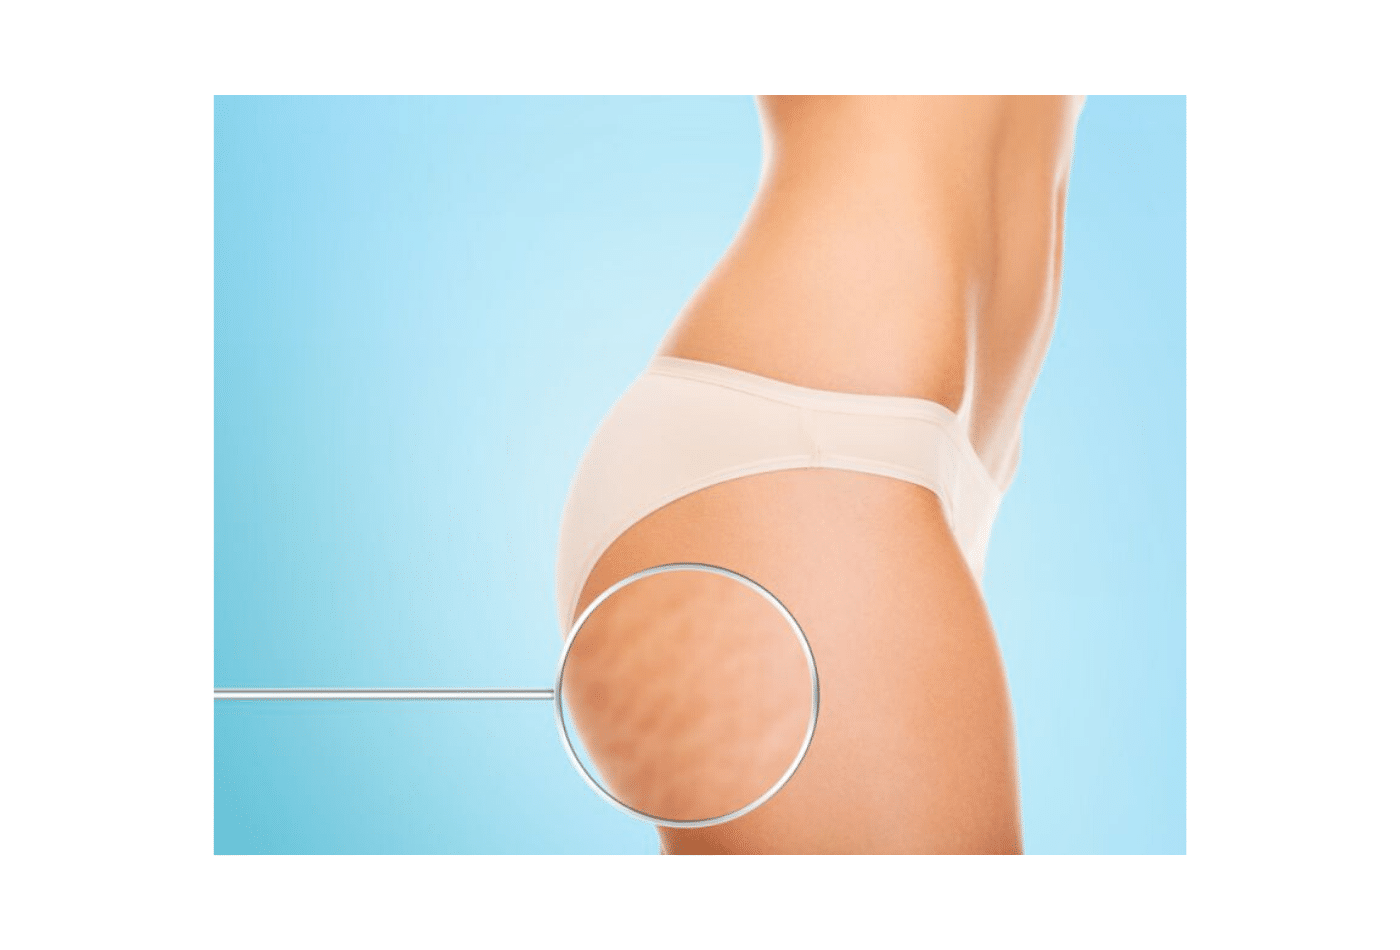 cellulite la verità